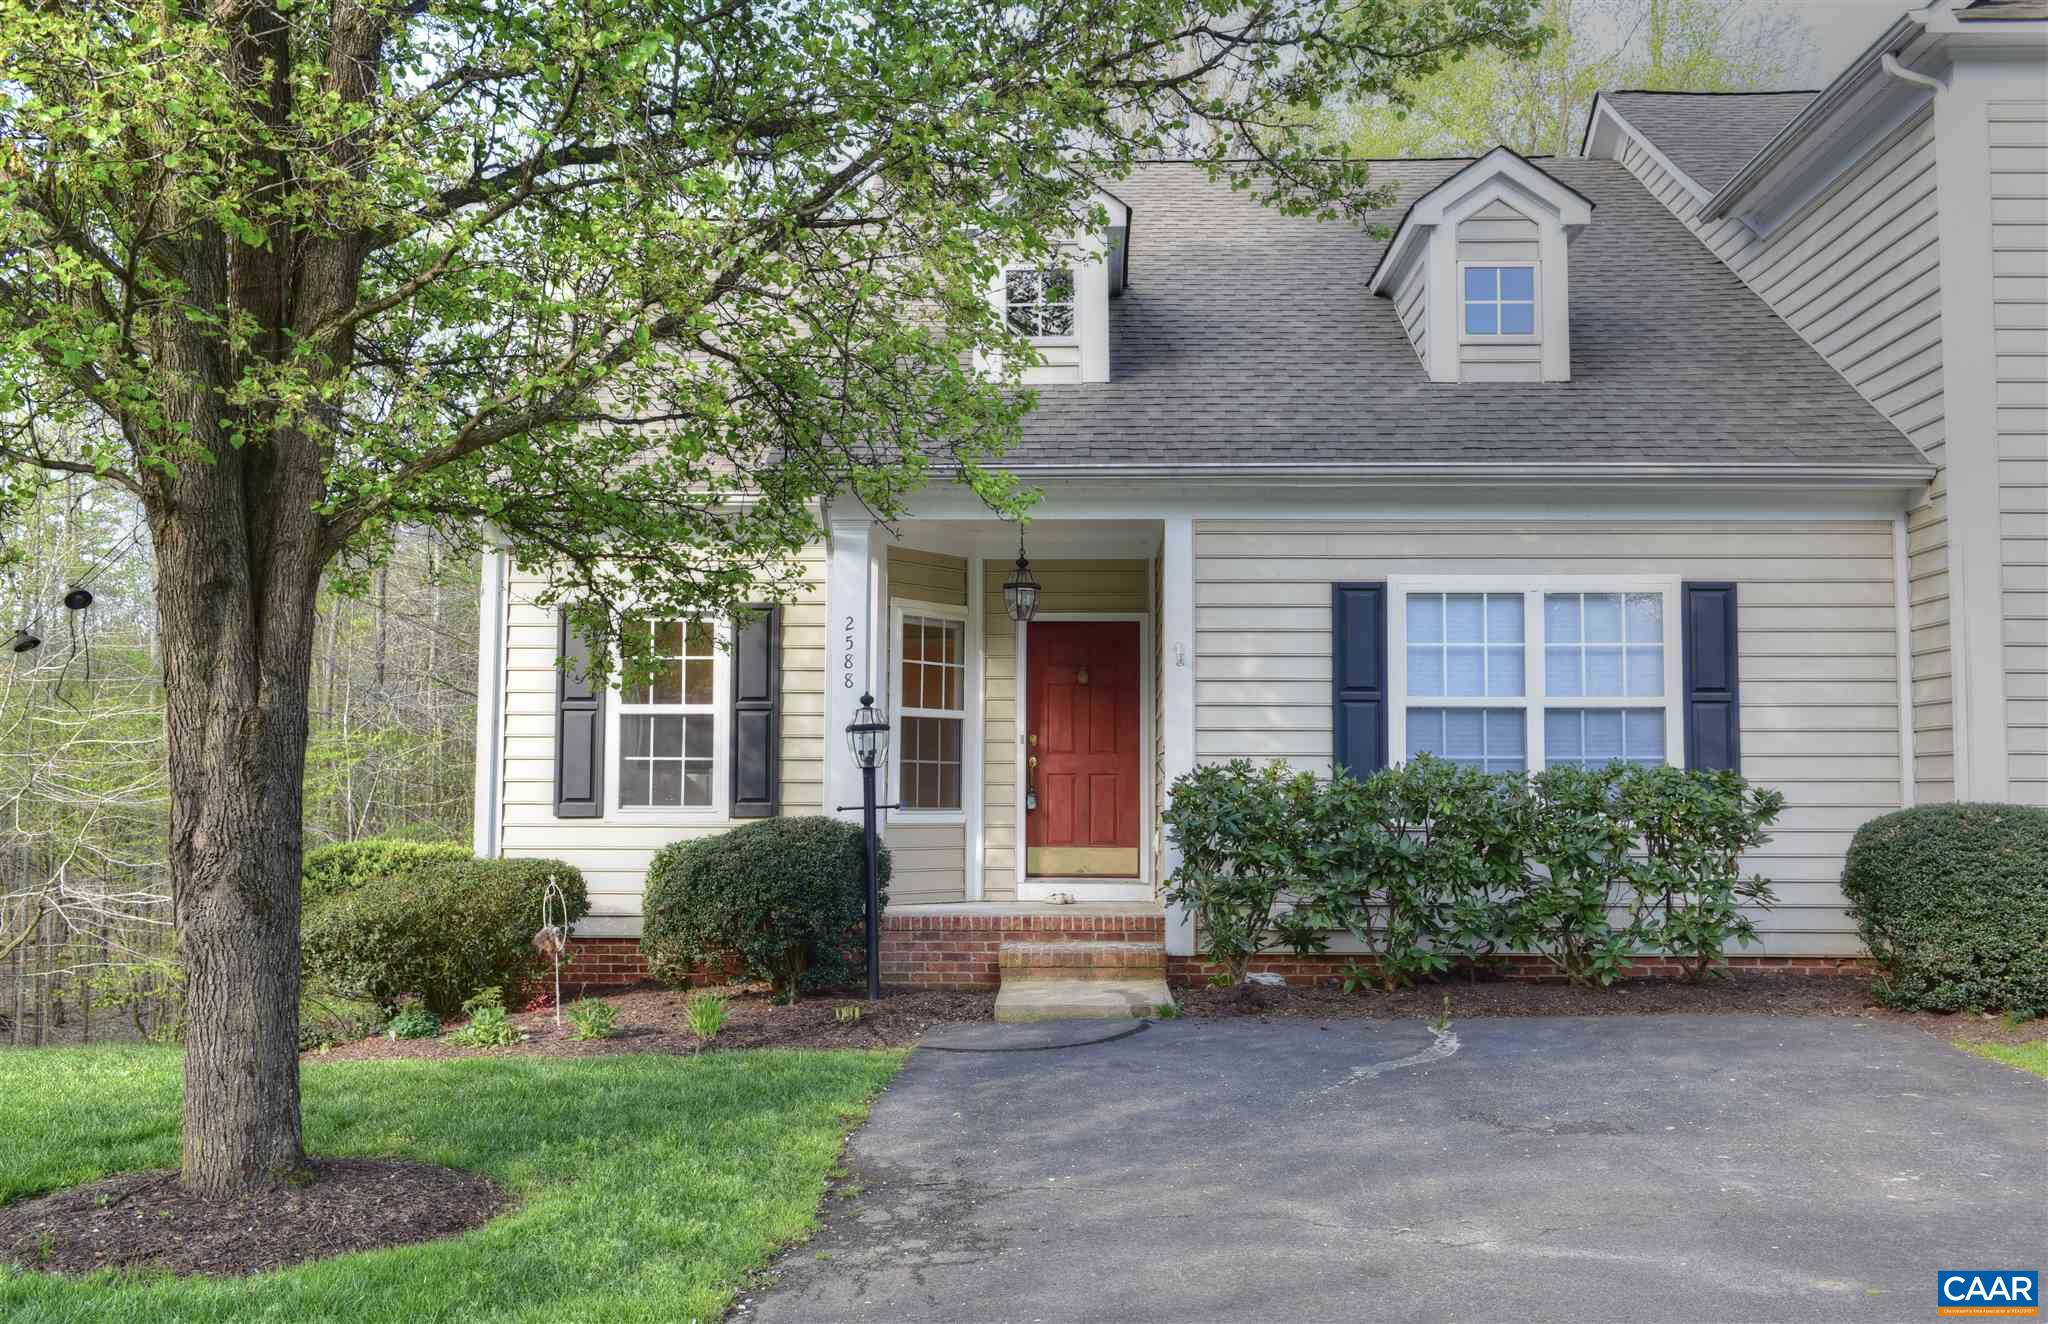 2588 Ravenscroft Way, Charlottesville